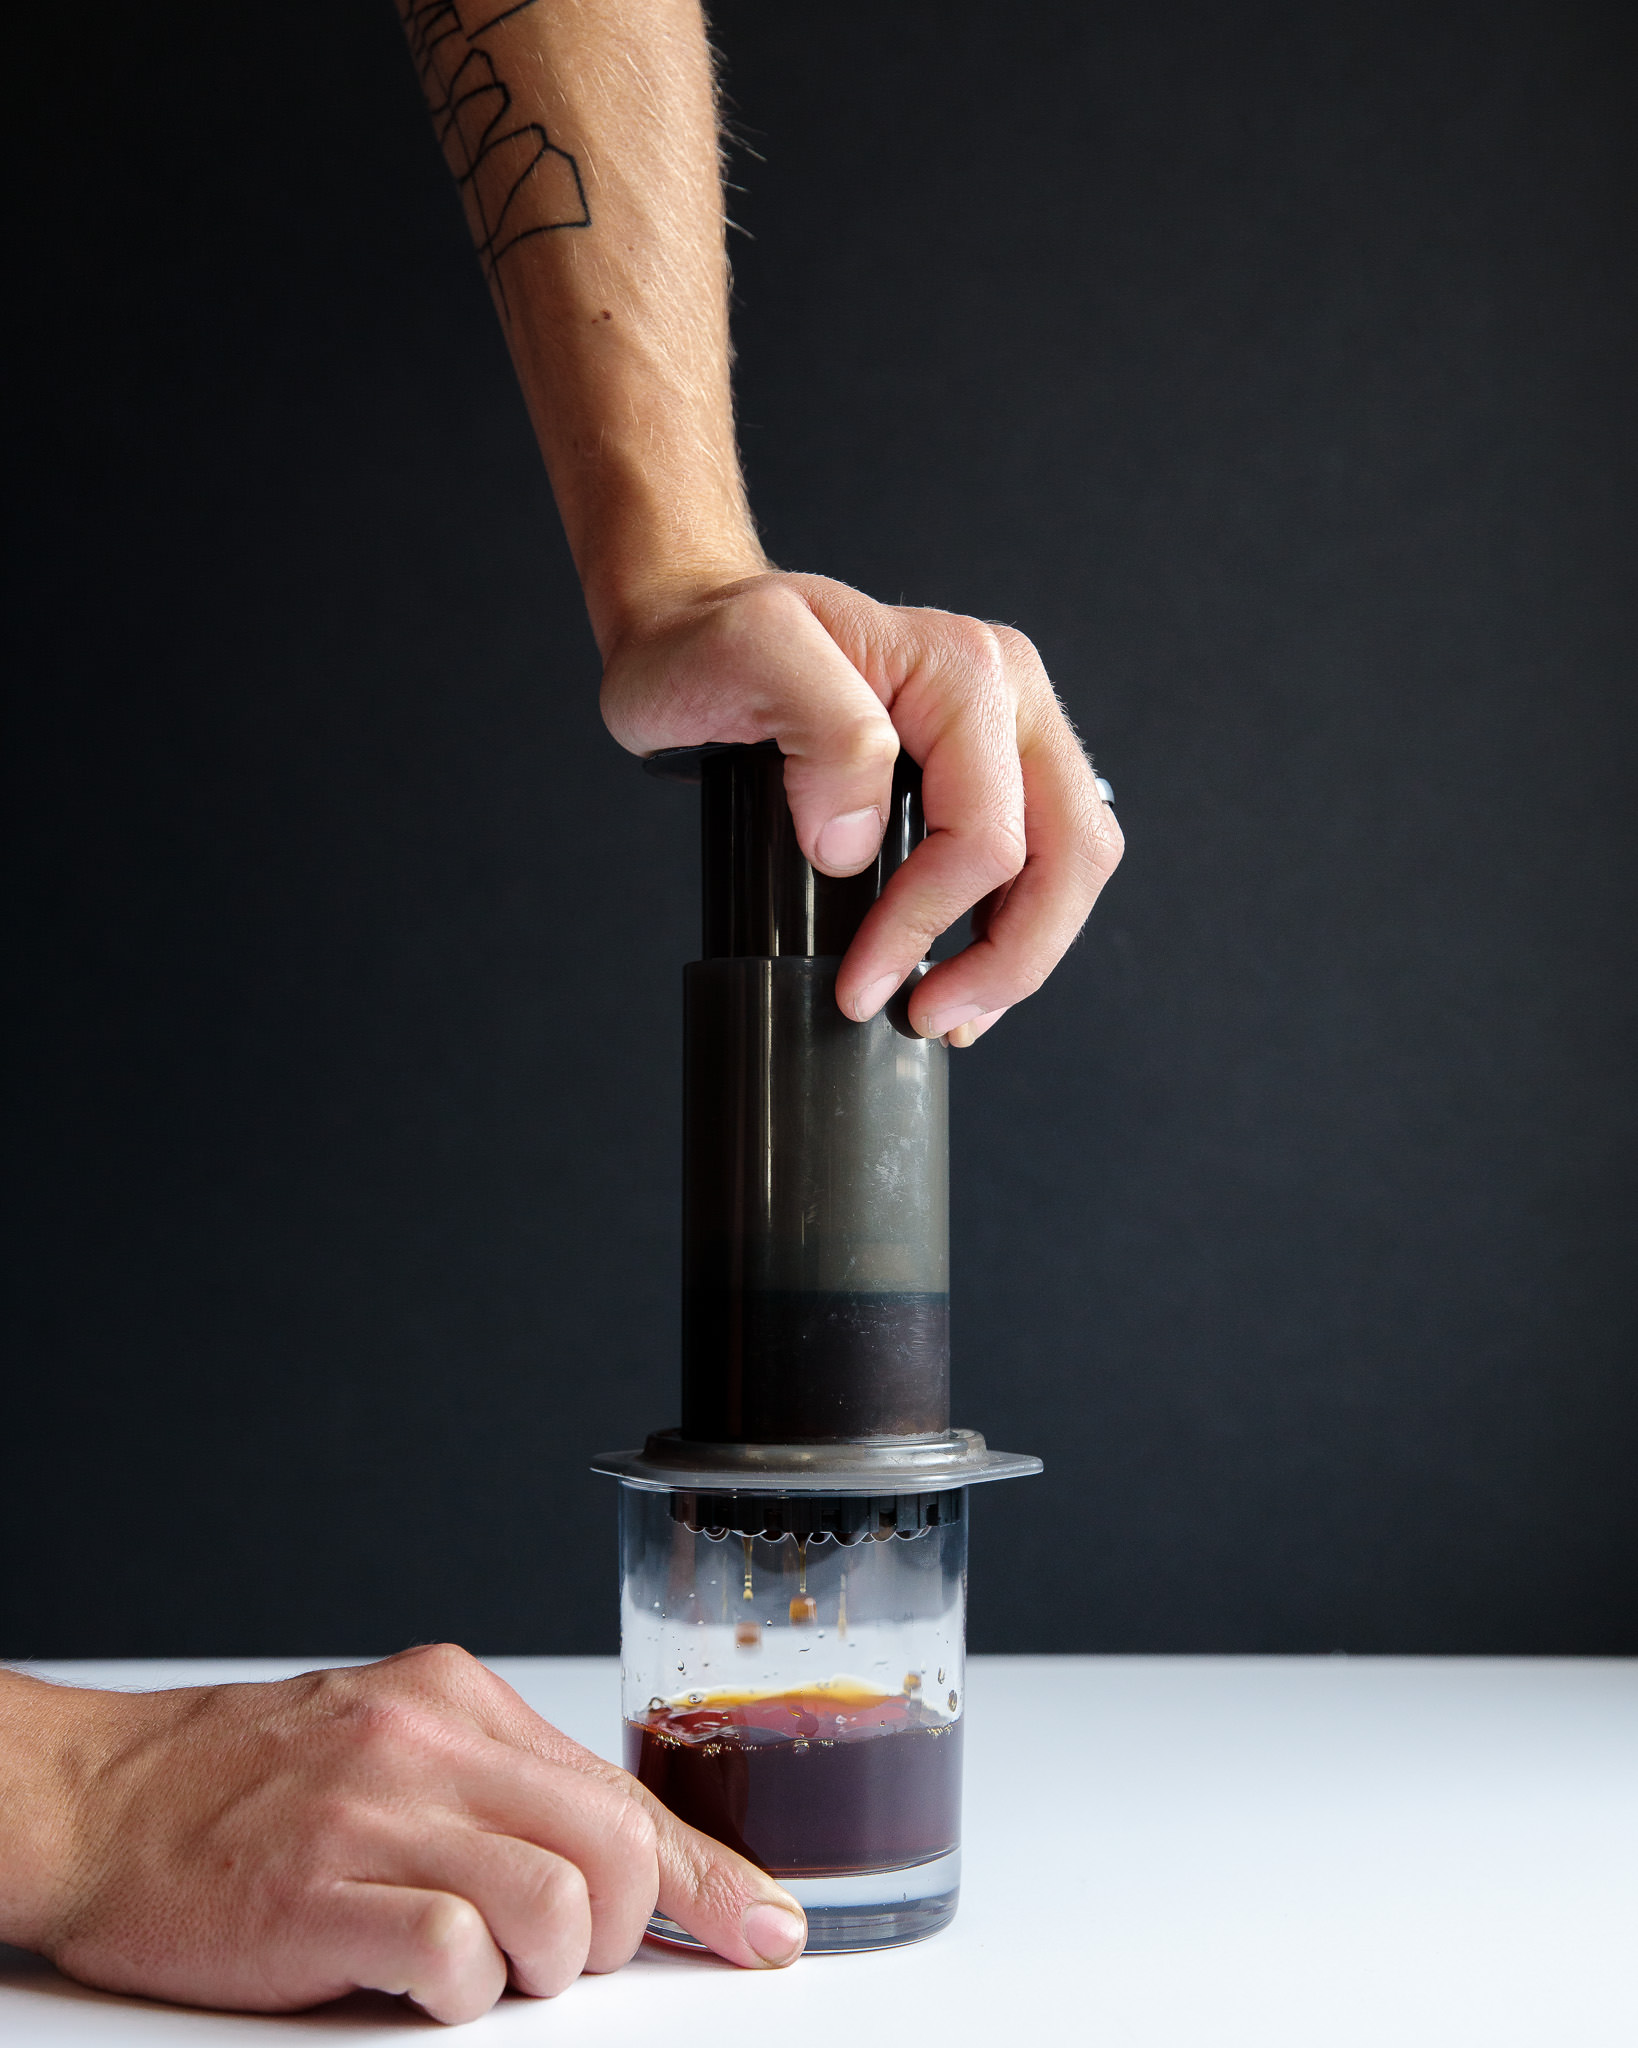 Pressure allows for more efficient extraction in cold brew coffee with an Aeropress